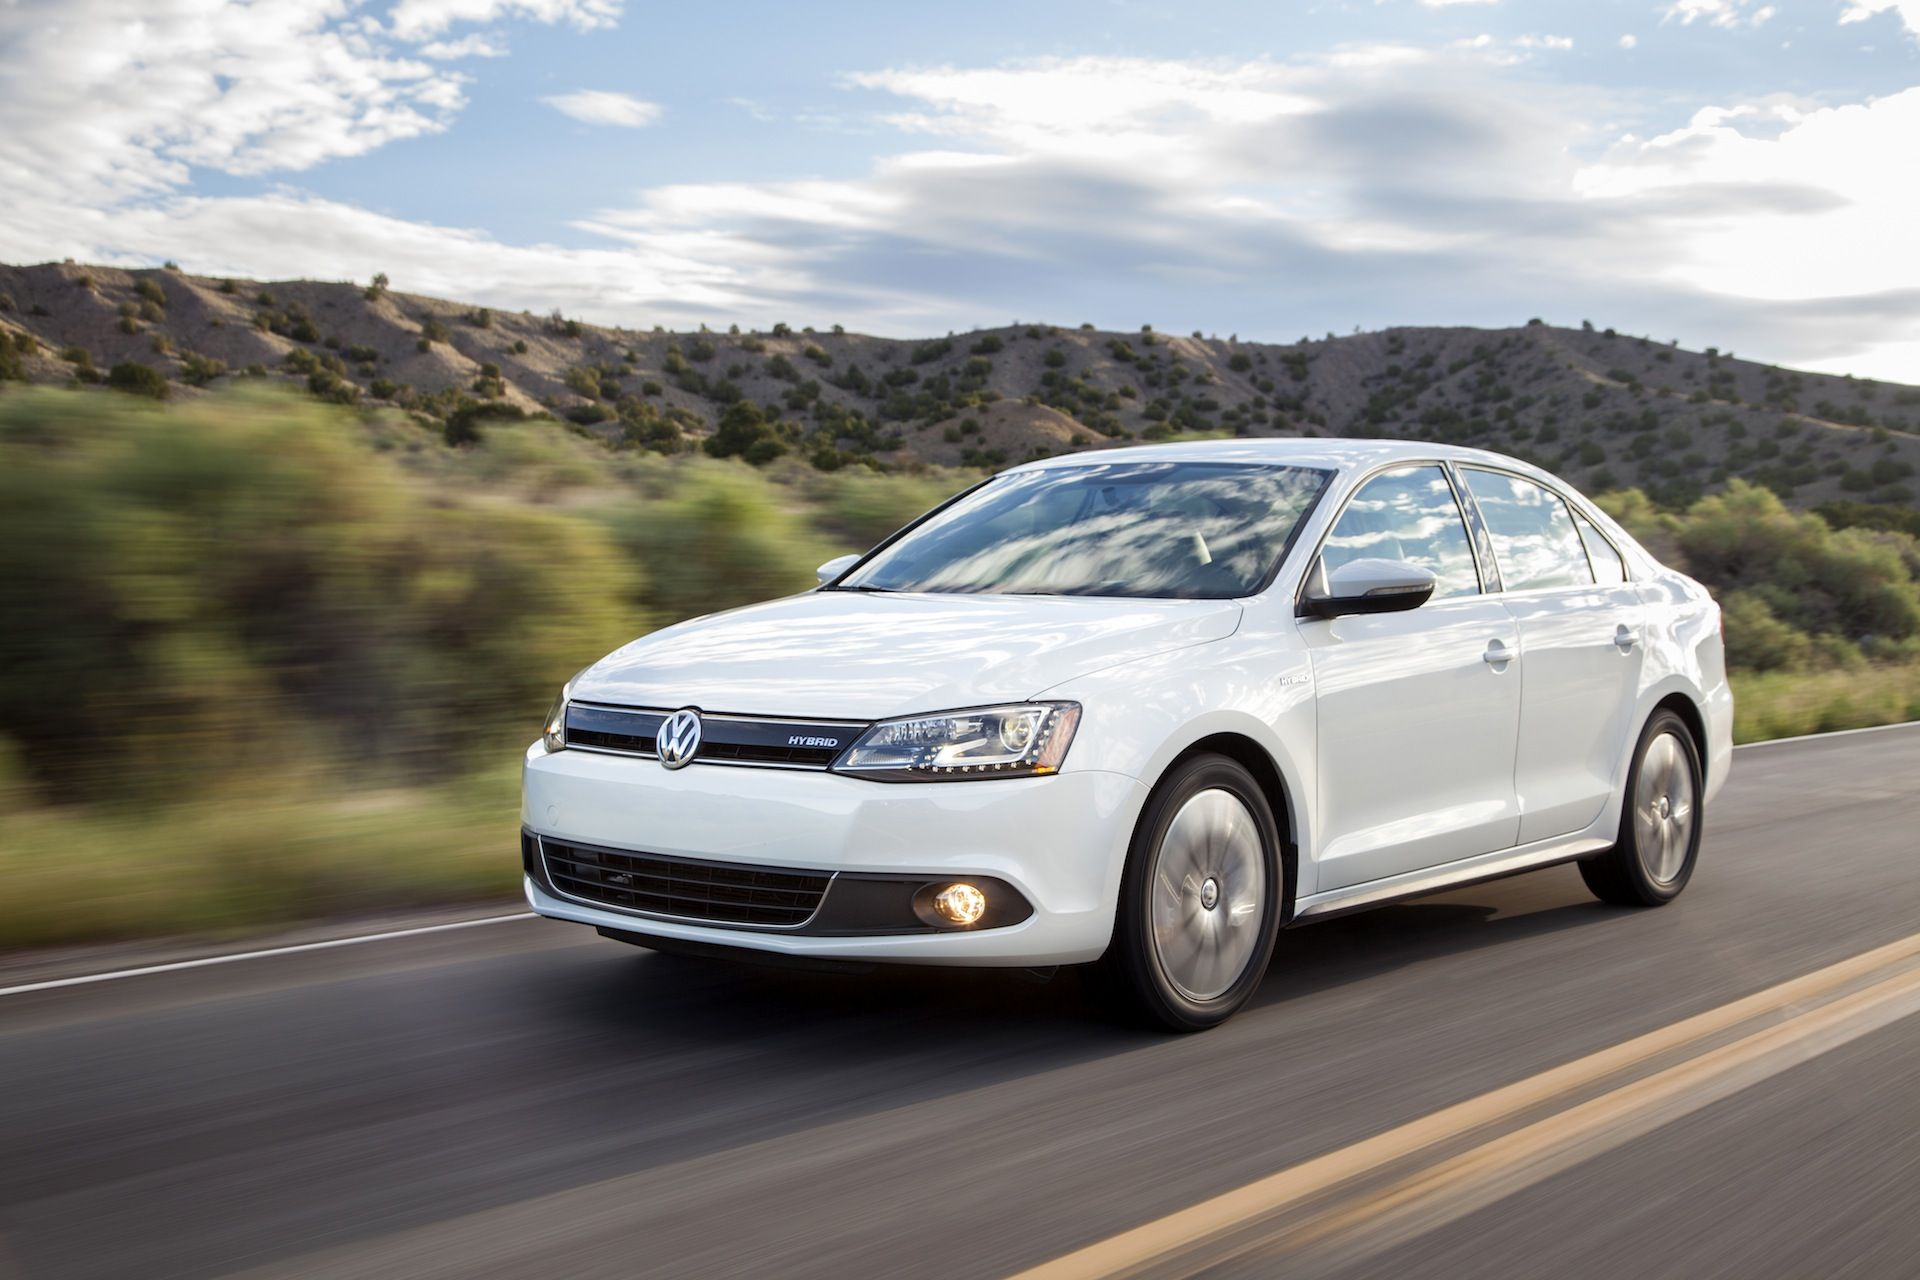 2014 volkswagen jetta specs and price for you who want to have the rh pinterest com 2014 jetta sportwagen owners manual 2014 jetta owners manual pdf